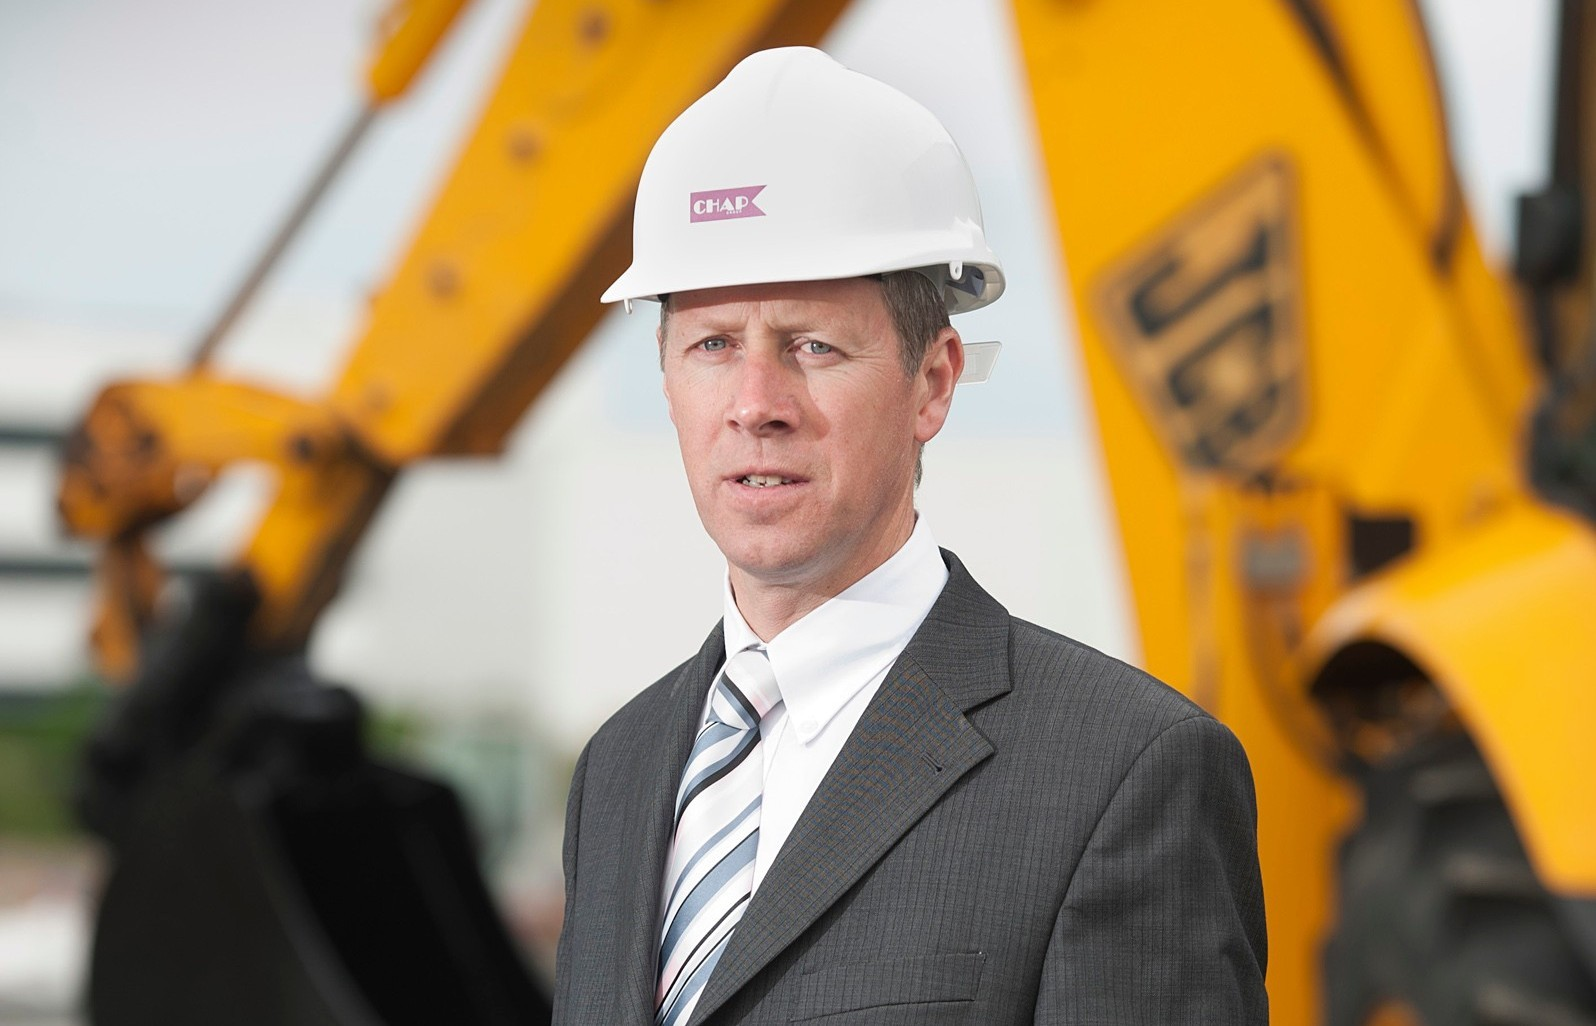 CHAP Group joint managing director Douglas Thomson